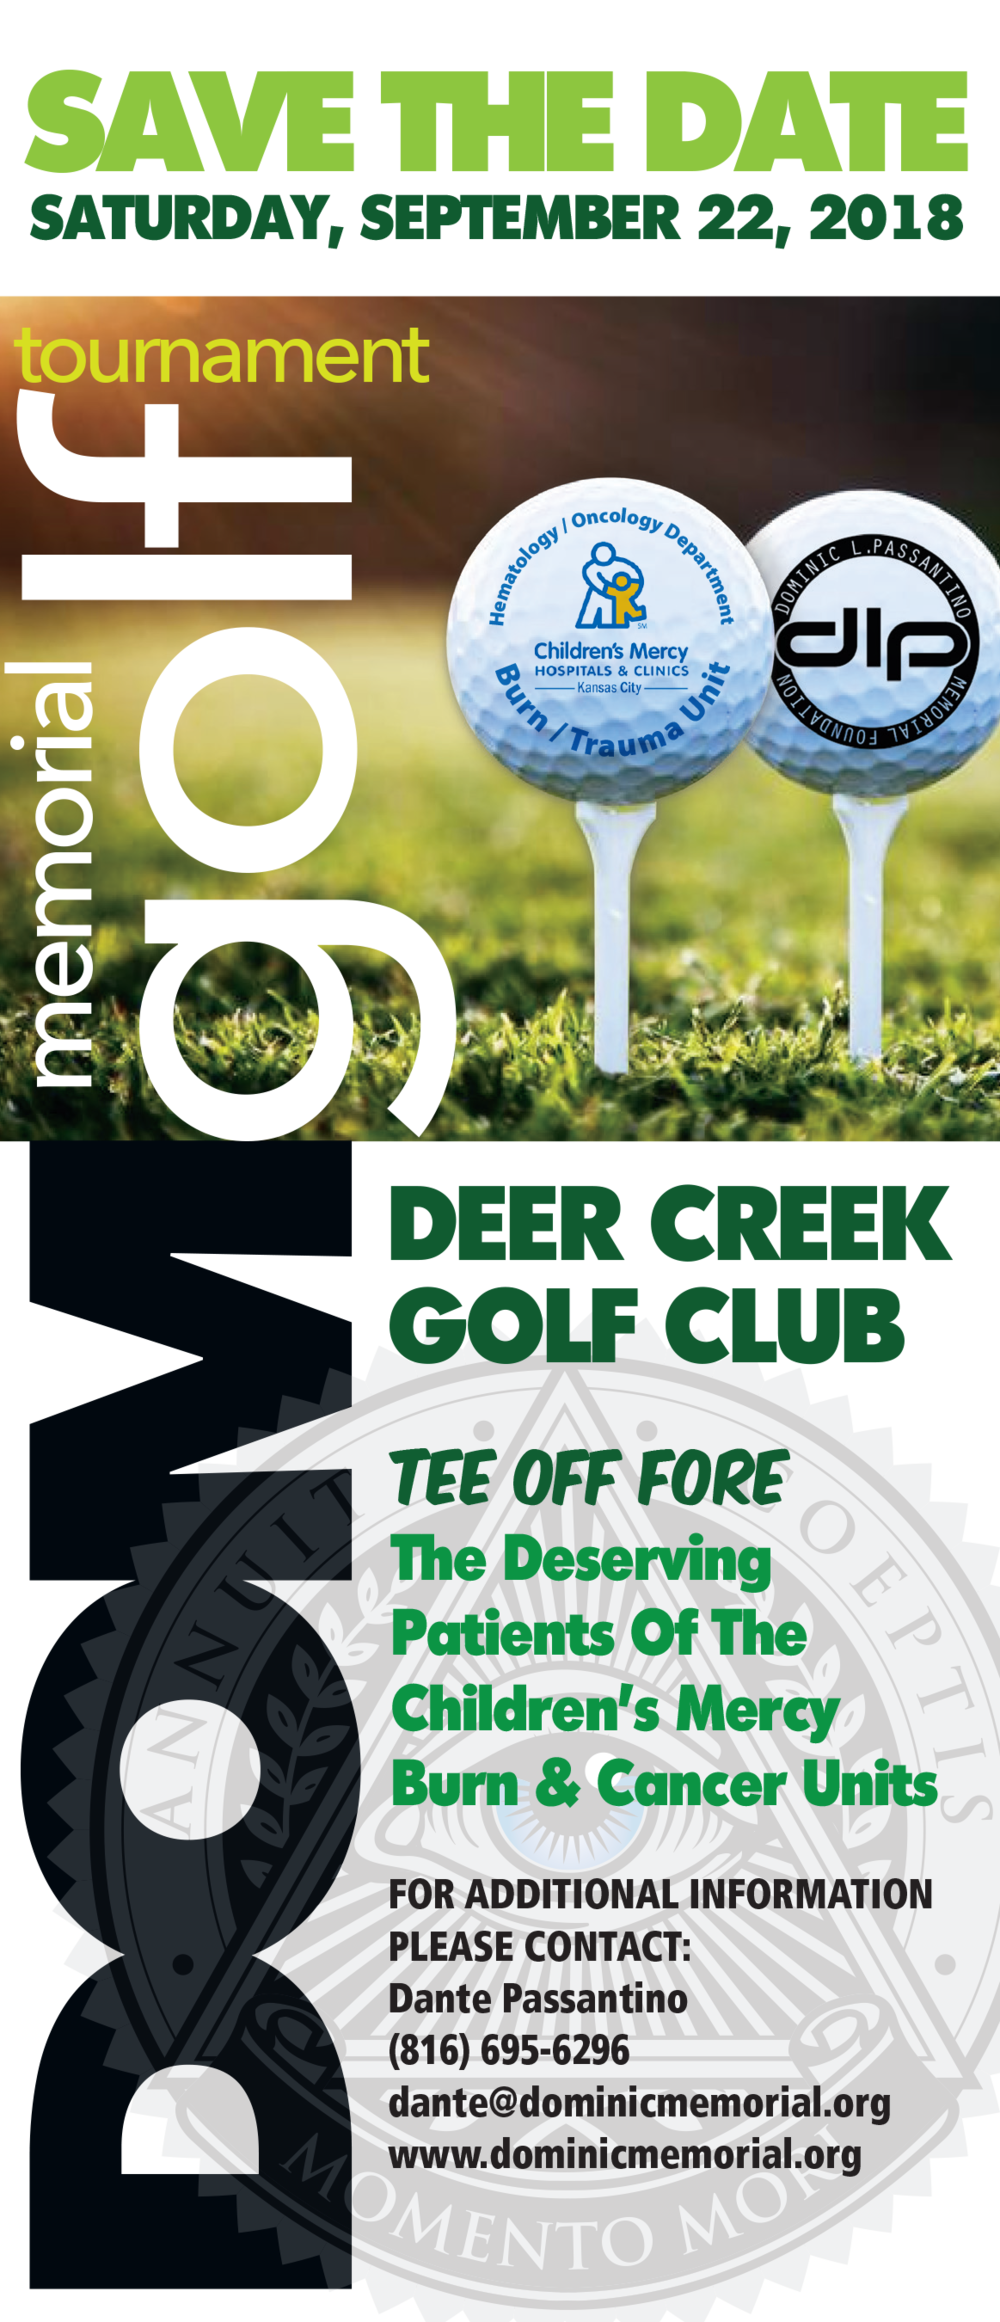 Golf.SaveTheDate.png